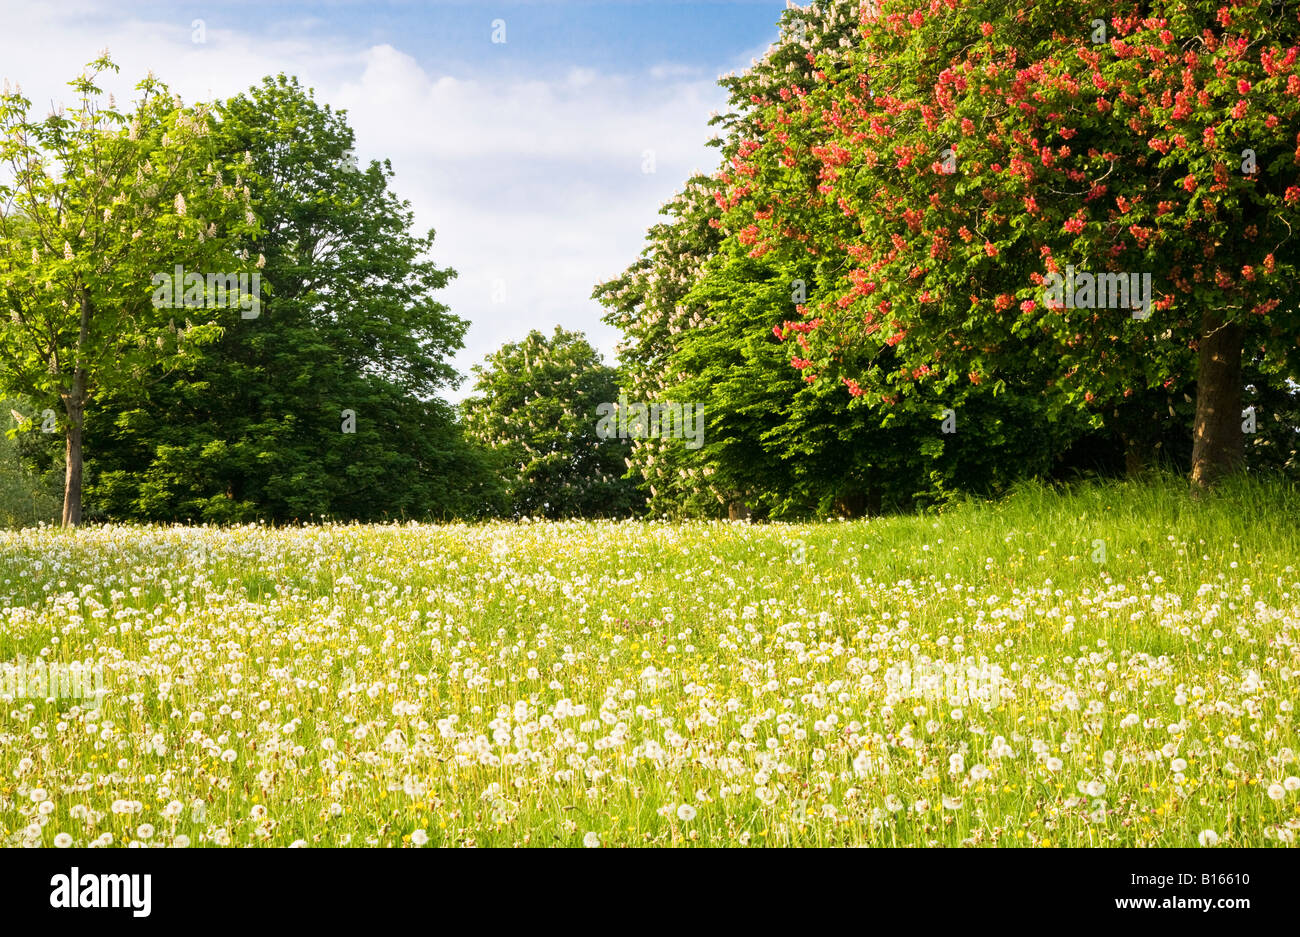 Trees with red and white spring blossom standing in a grassy meadow of dandelion seed heads and buttercups in Wiltshire, - Stock Image